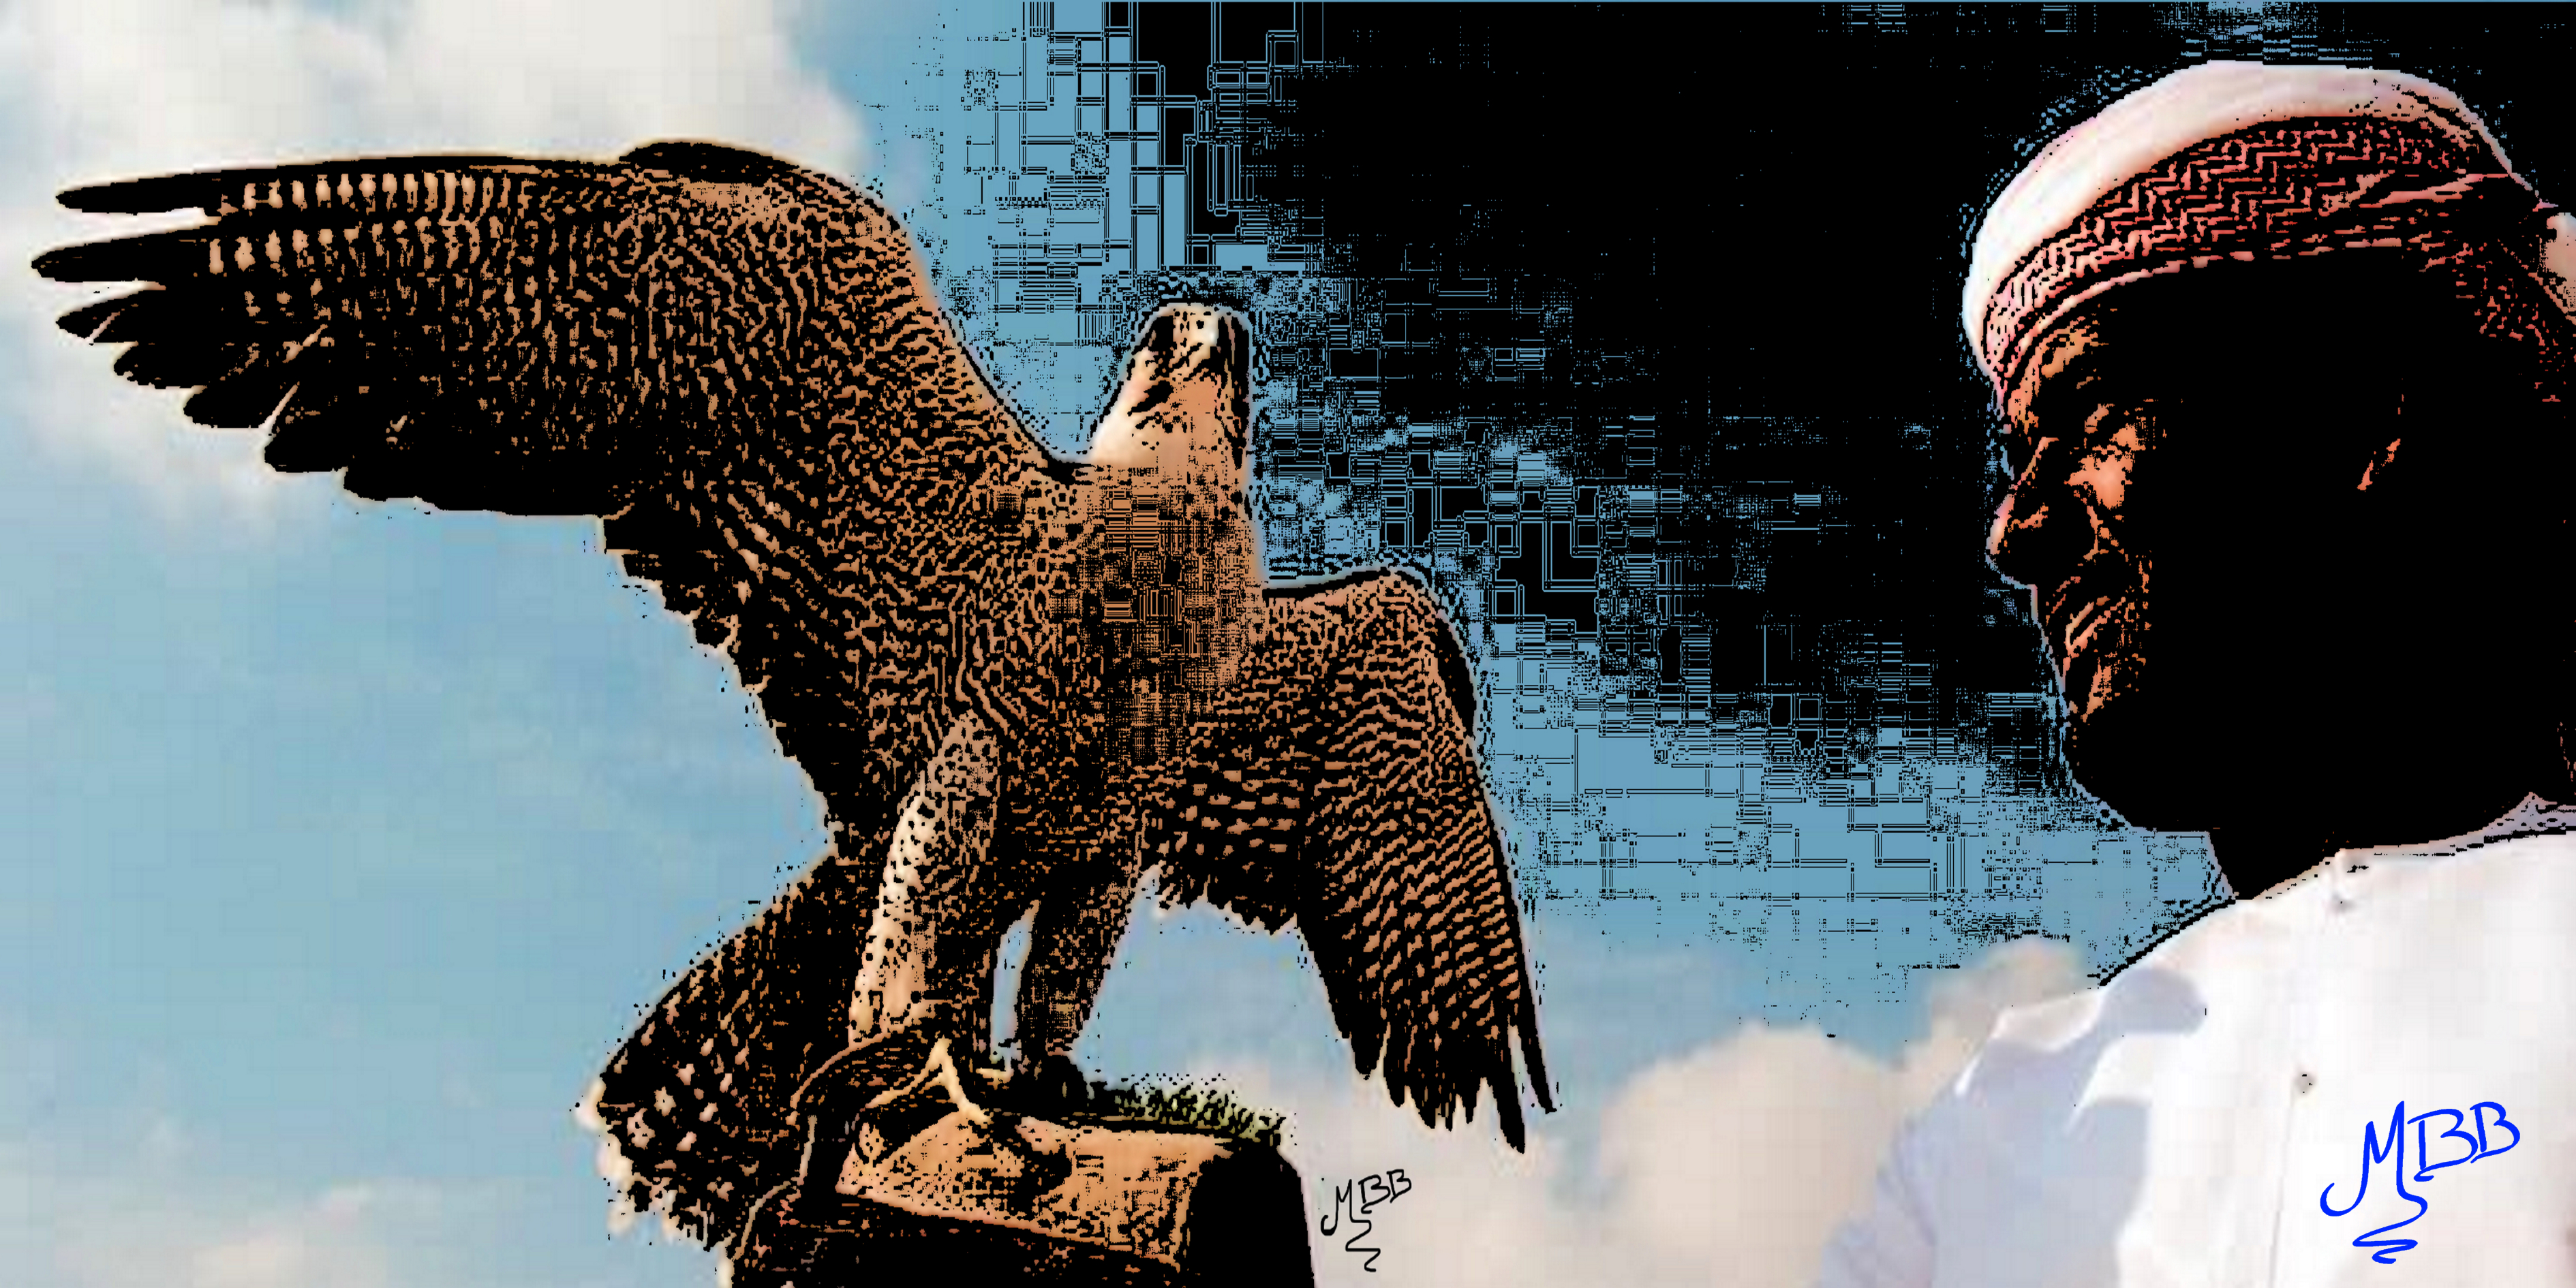 Falcon with wings